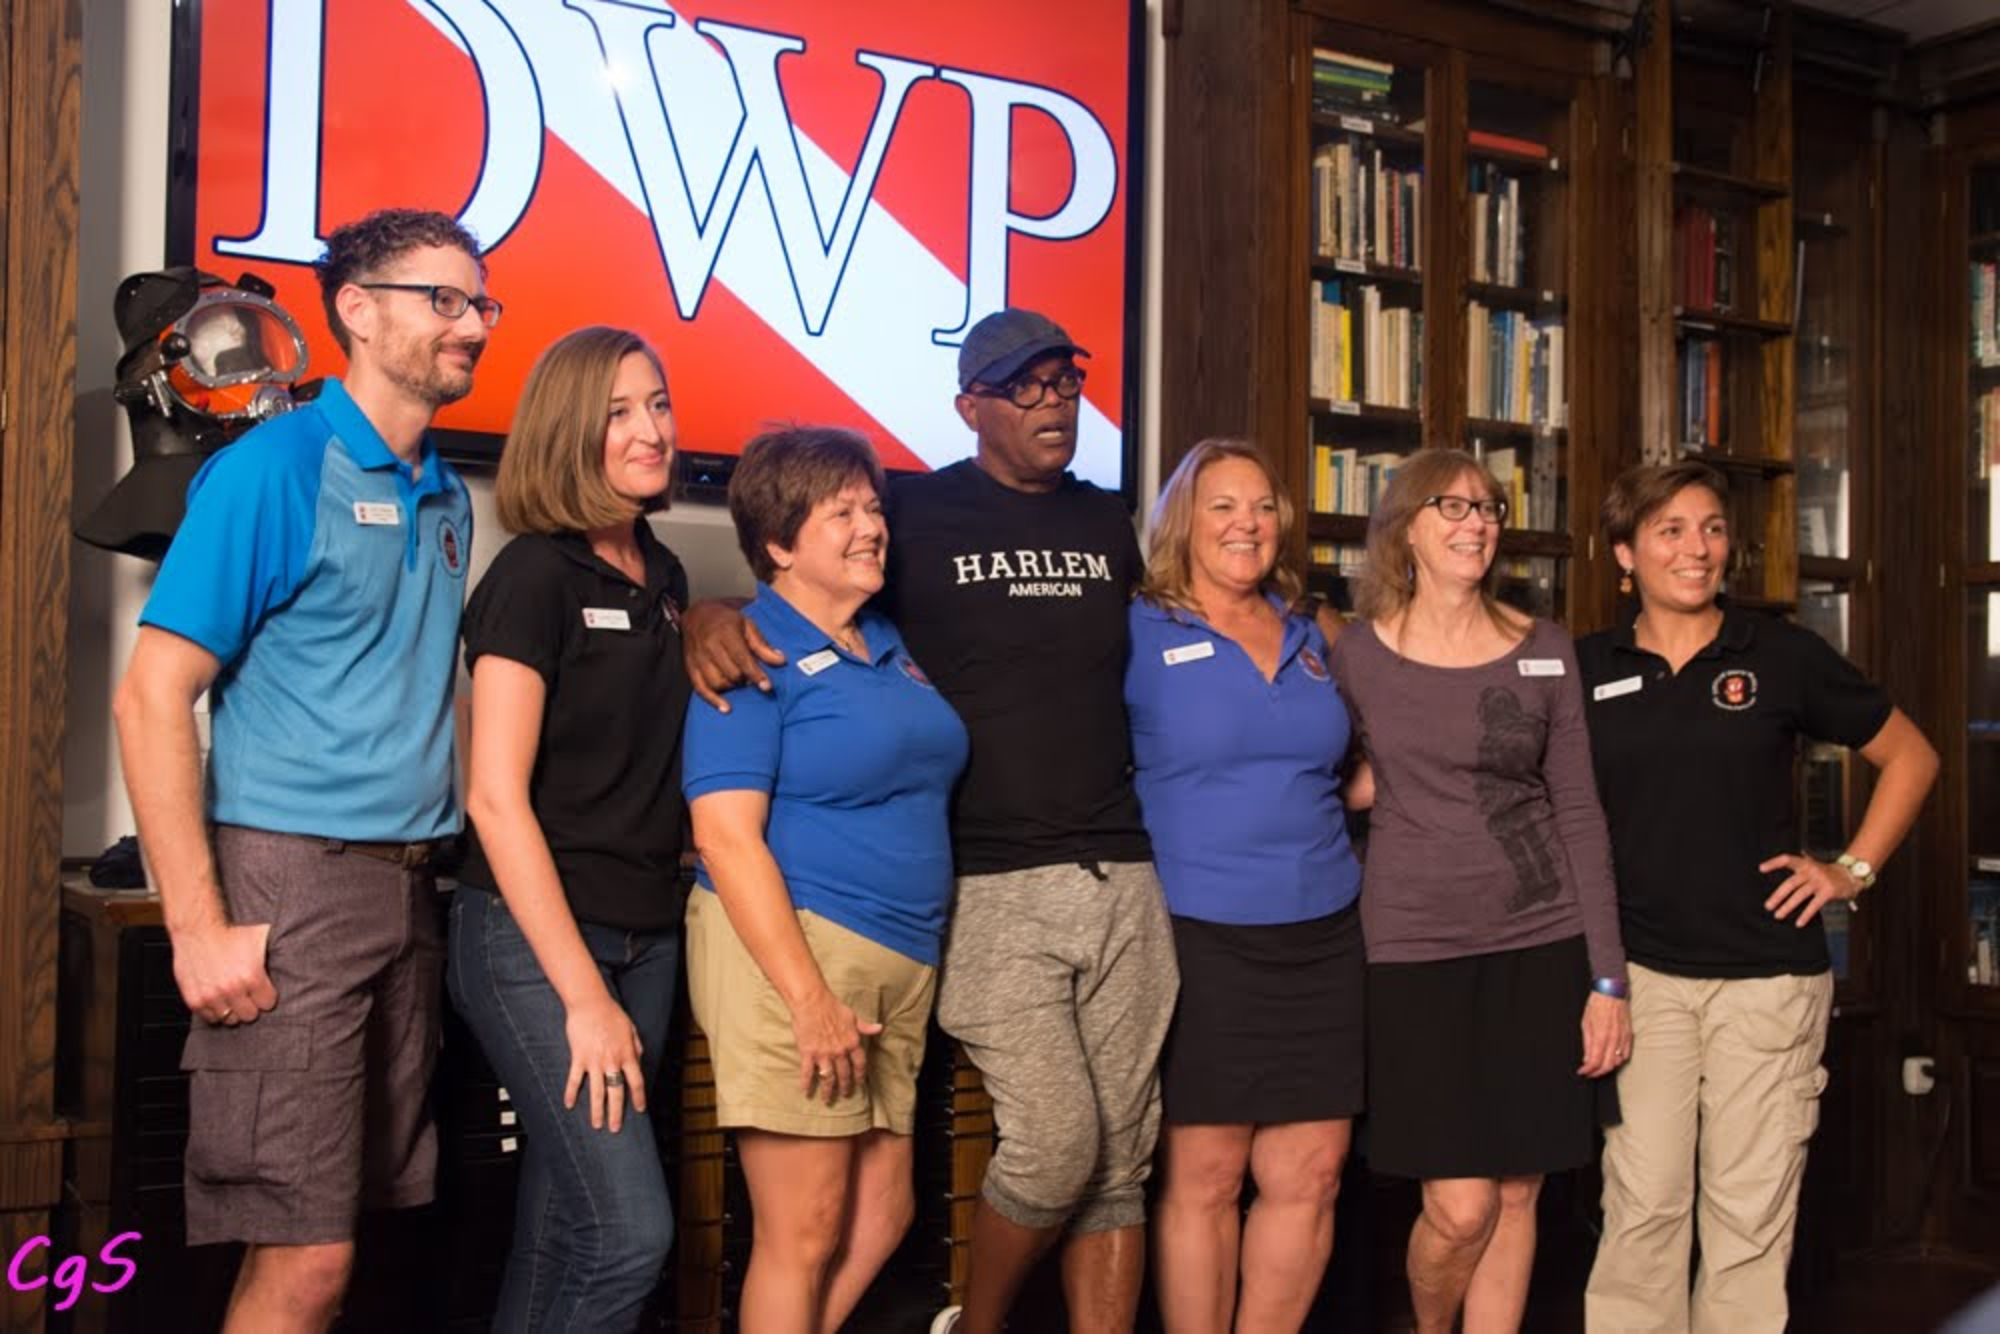 Samuel L. Jackson Visits History of Diving Museum and Diving With a Purpose Exhibit